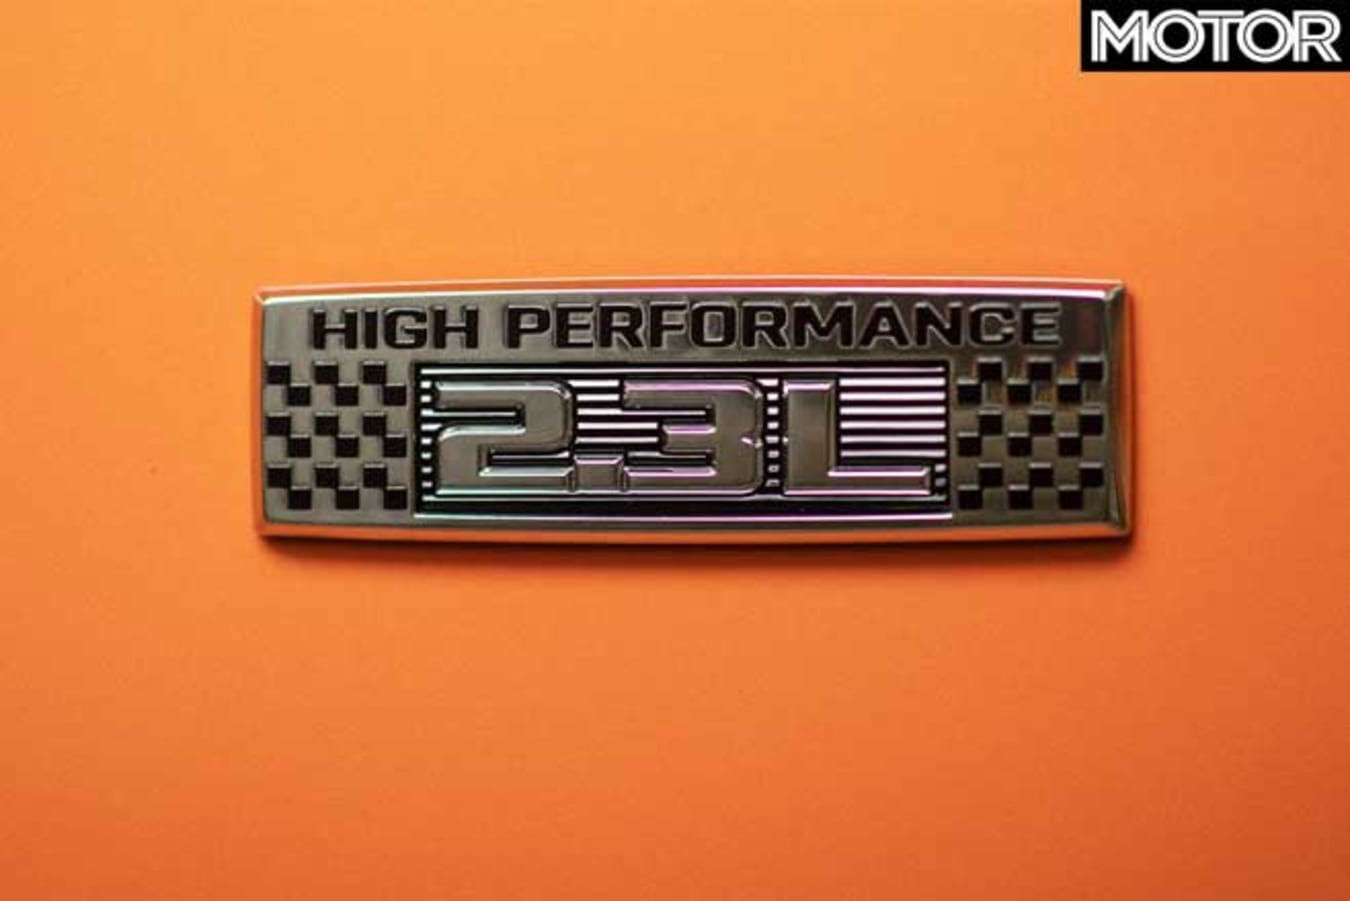 2020 Ford Mustang 2.3L High Performance badge